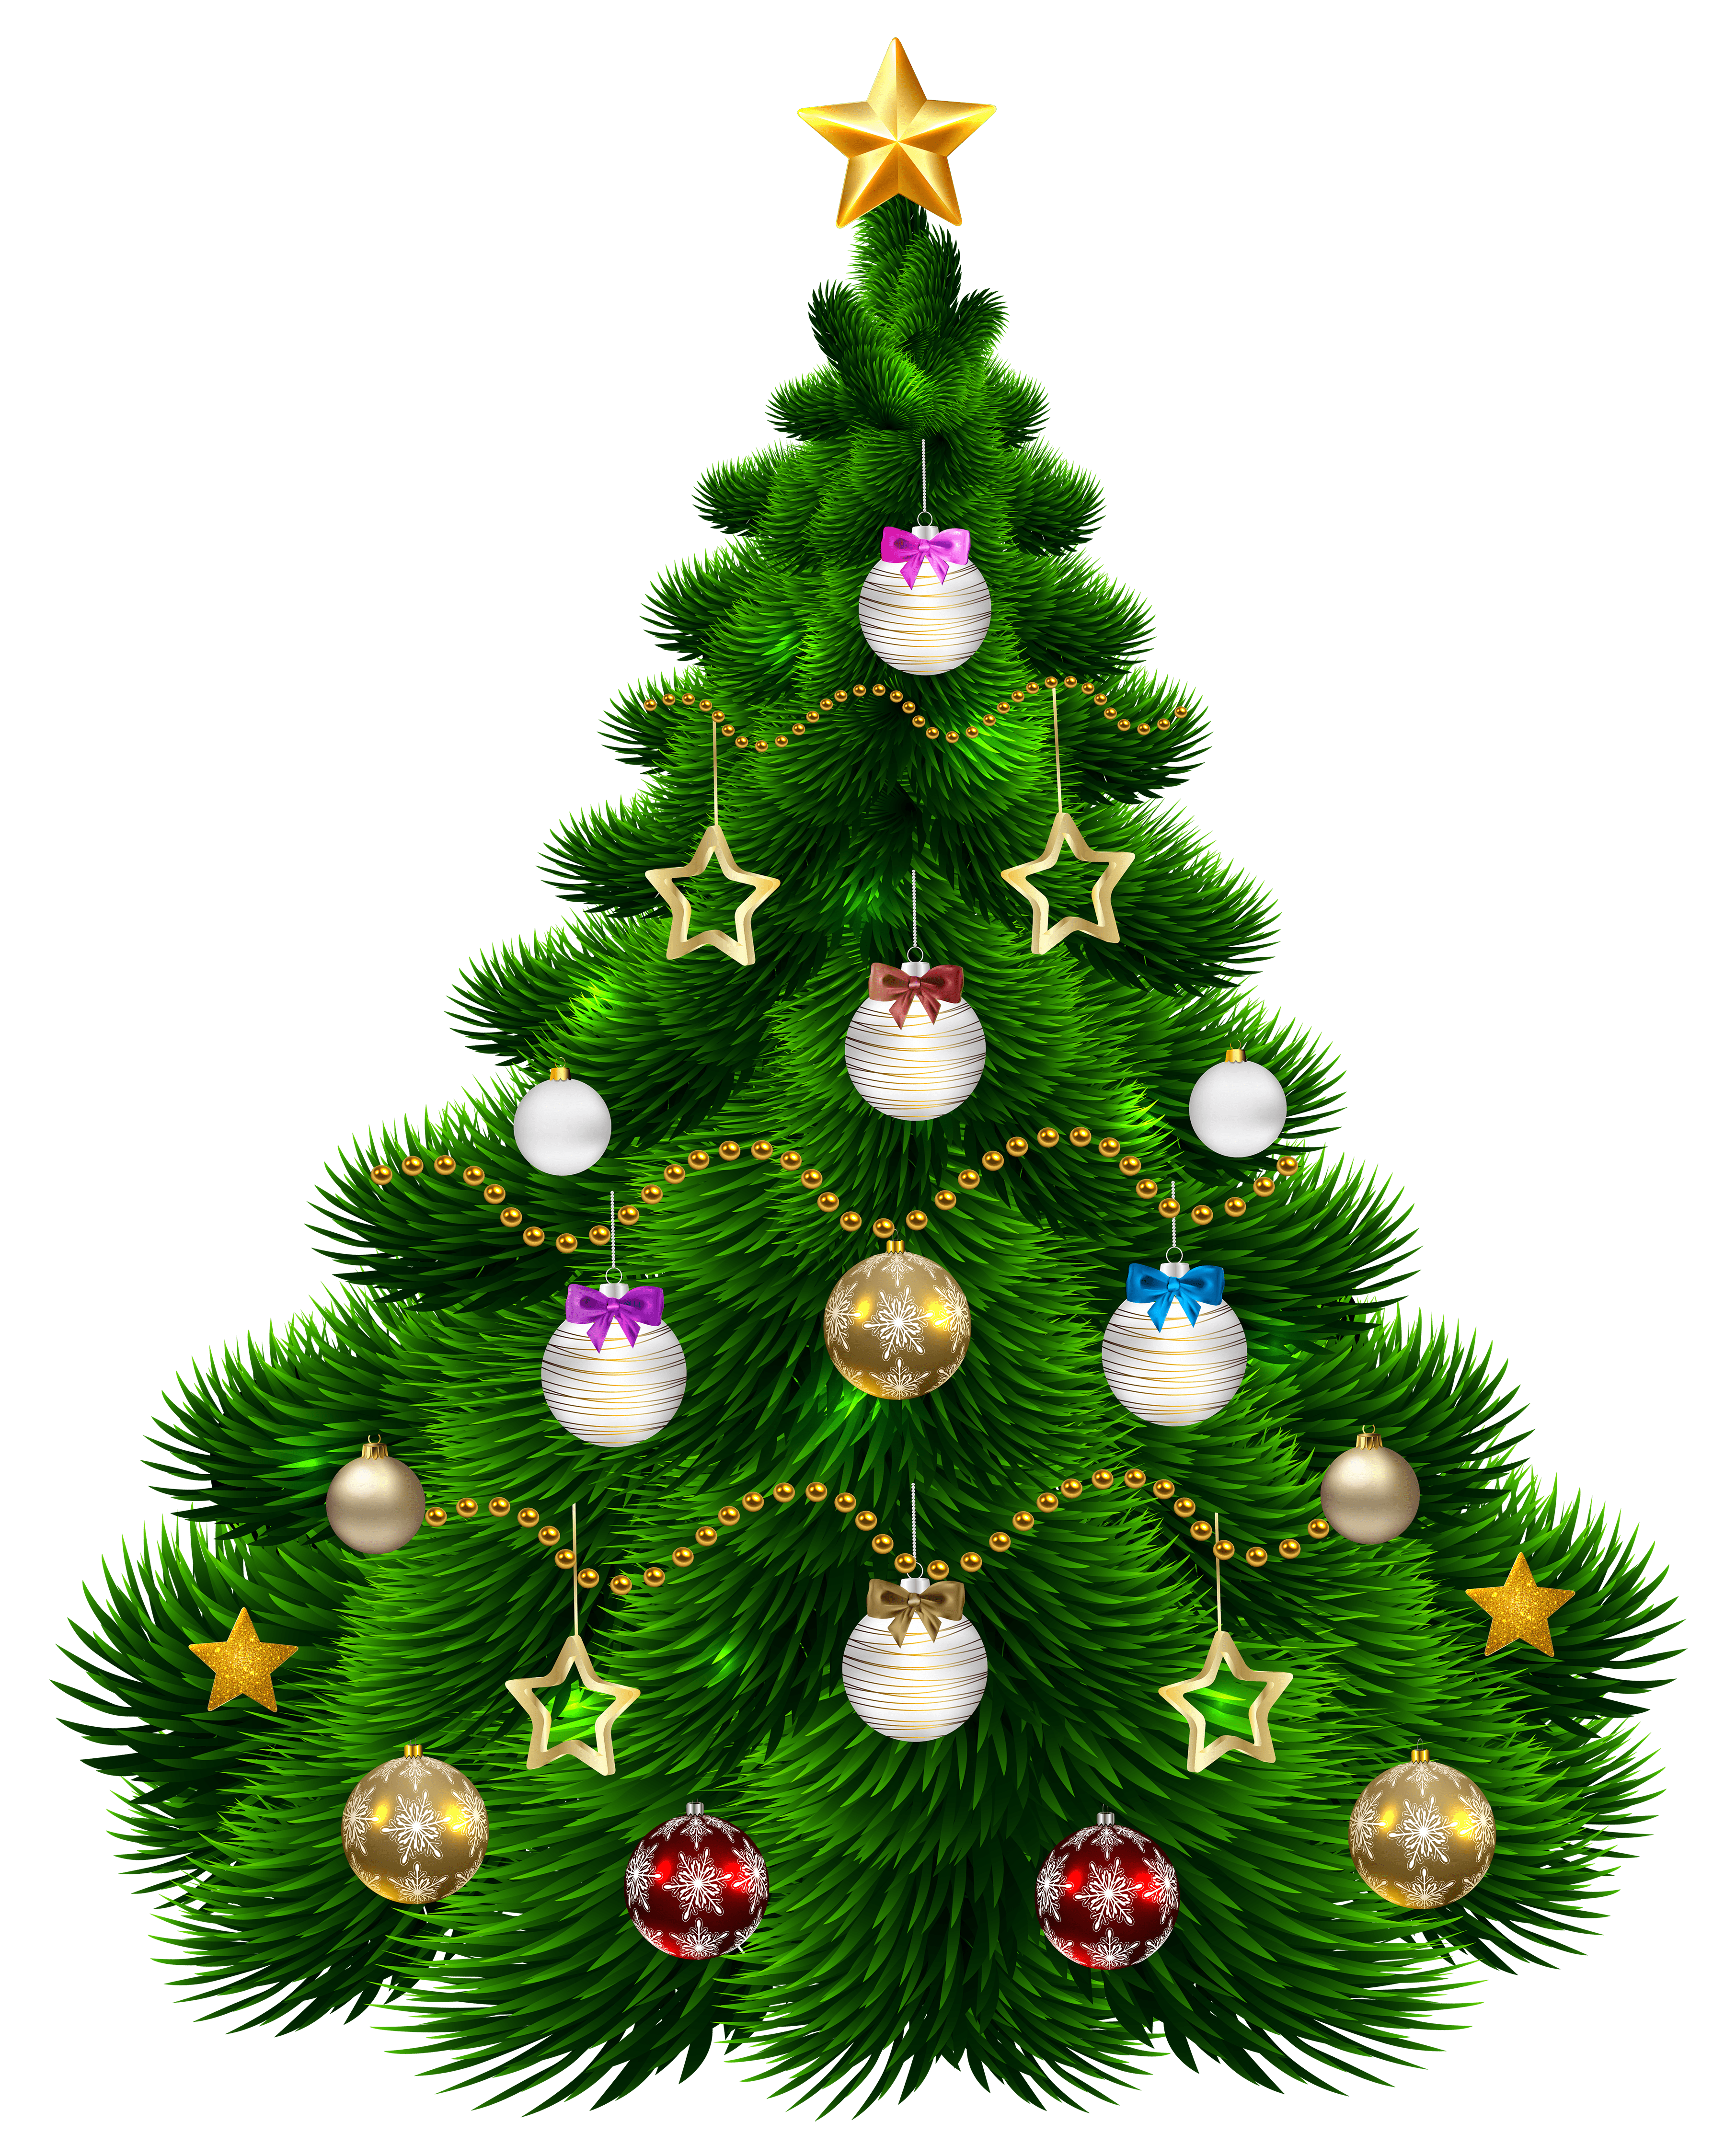 hight resolution of beautiful christmas tree with ornaments png clip art image